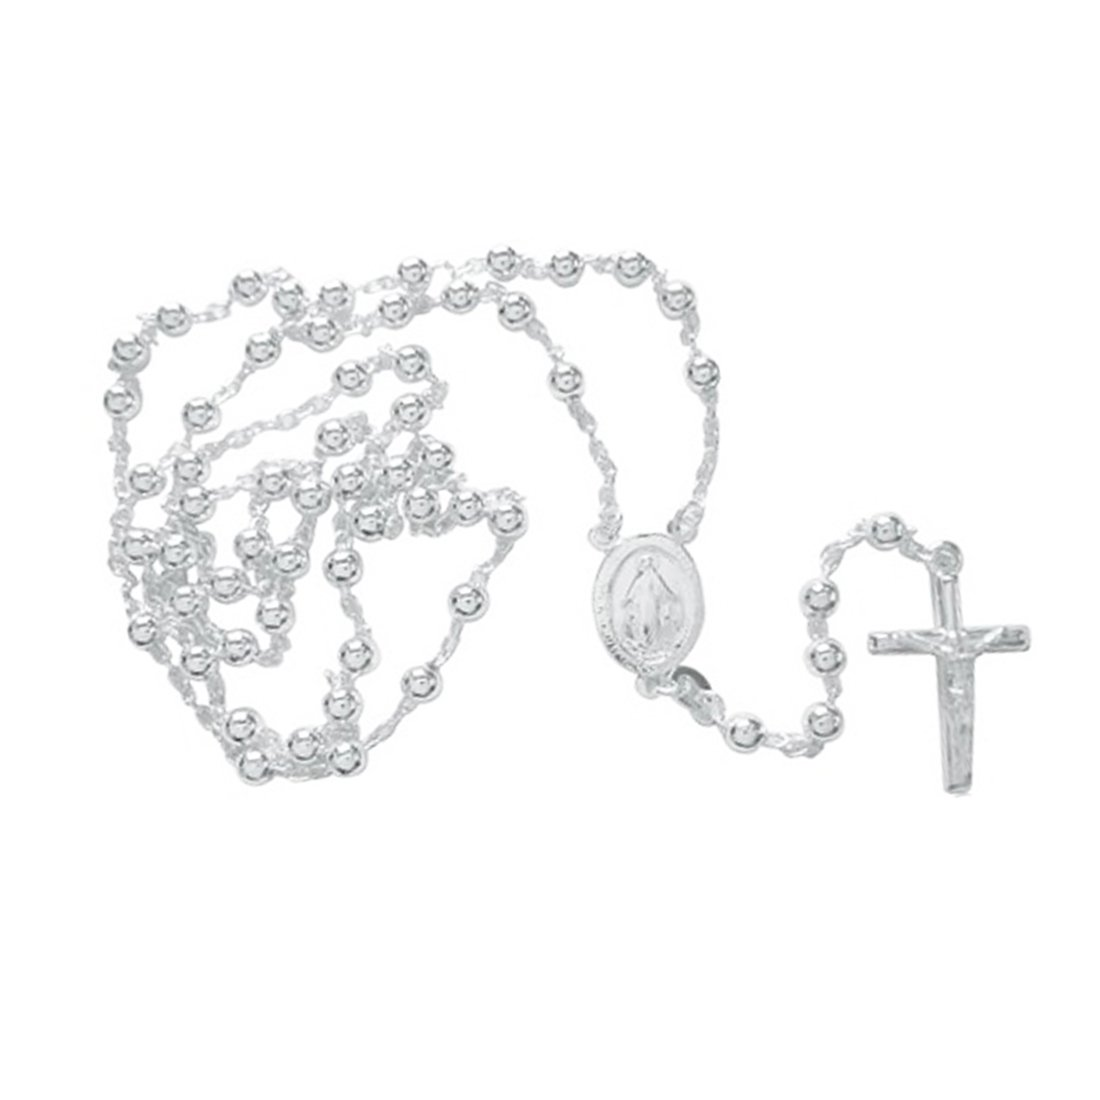 Sterling Silver Catholic Rosary 4mm Beads Virgin Mary Crucifix Cross 24'' Necklace by Ritastephens (Image #4)